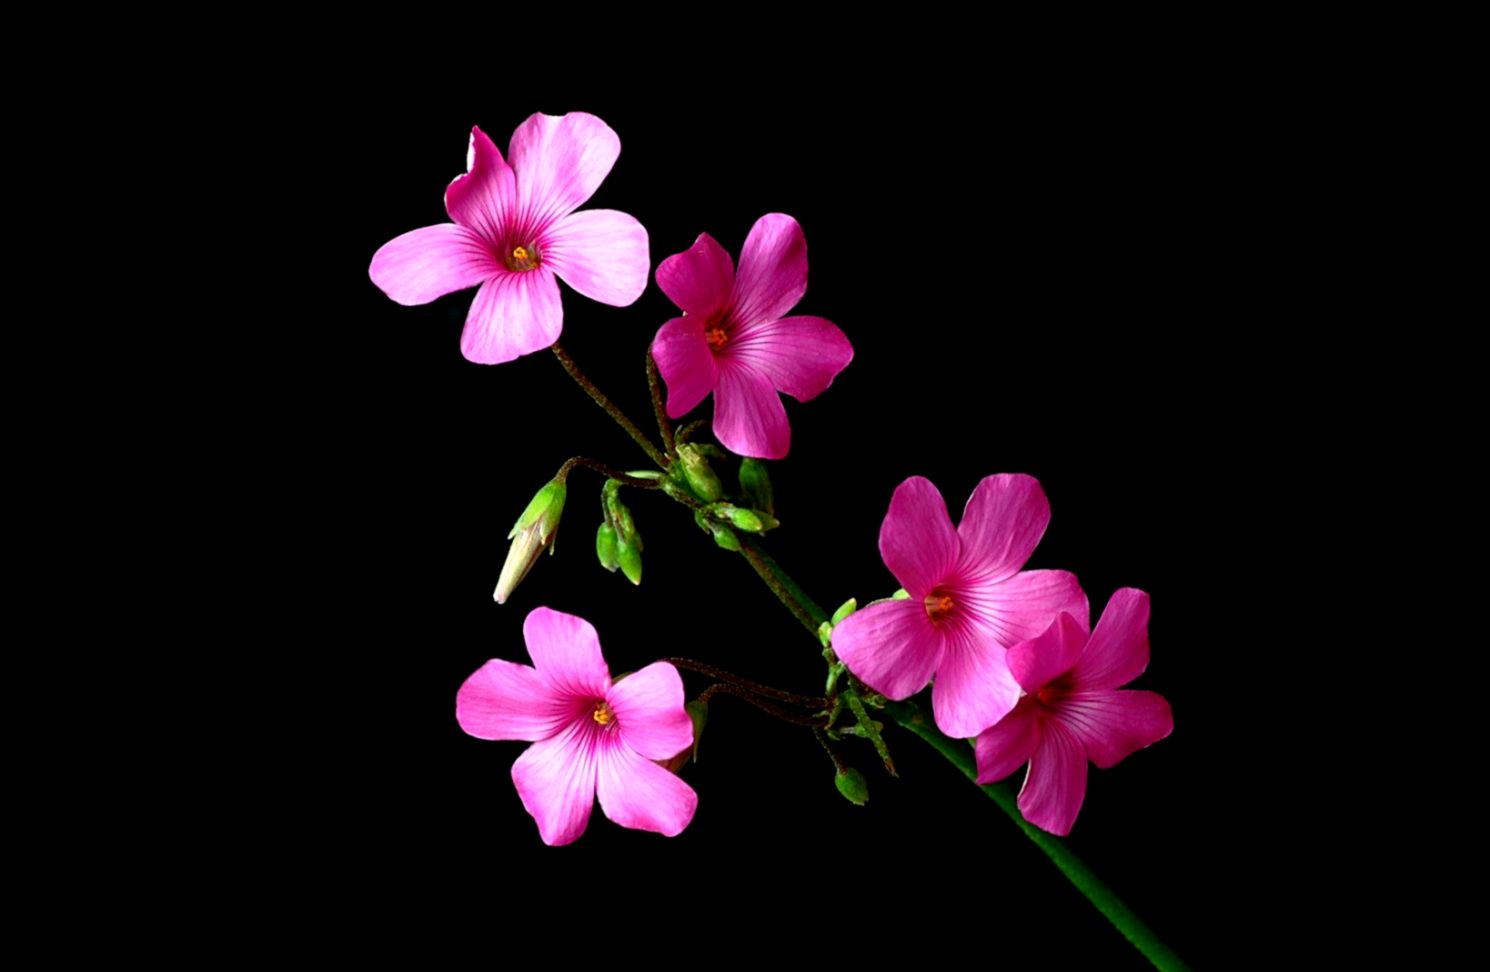 Pink And Black Flower Wallpaper Wallpapers Image